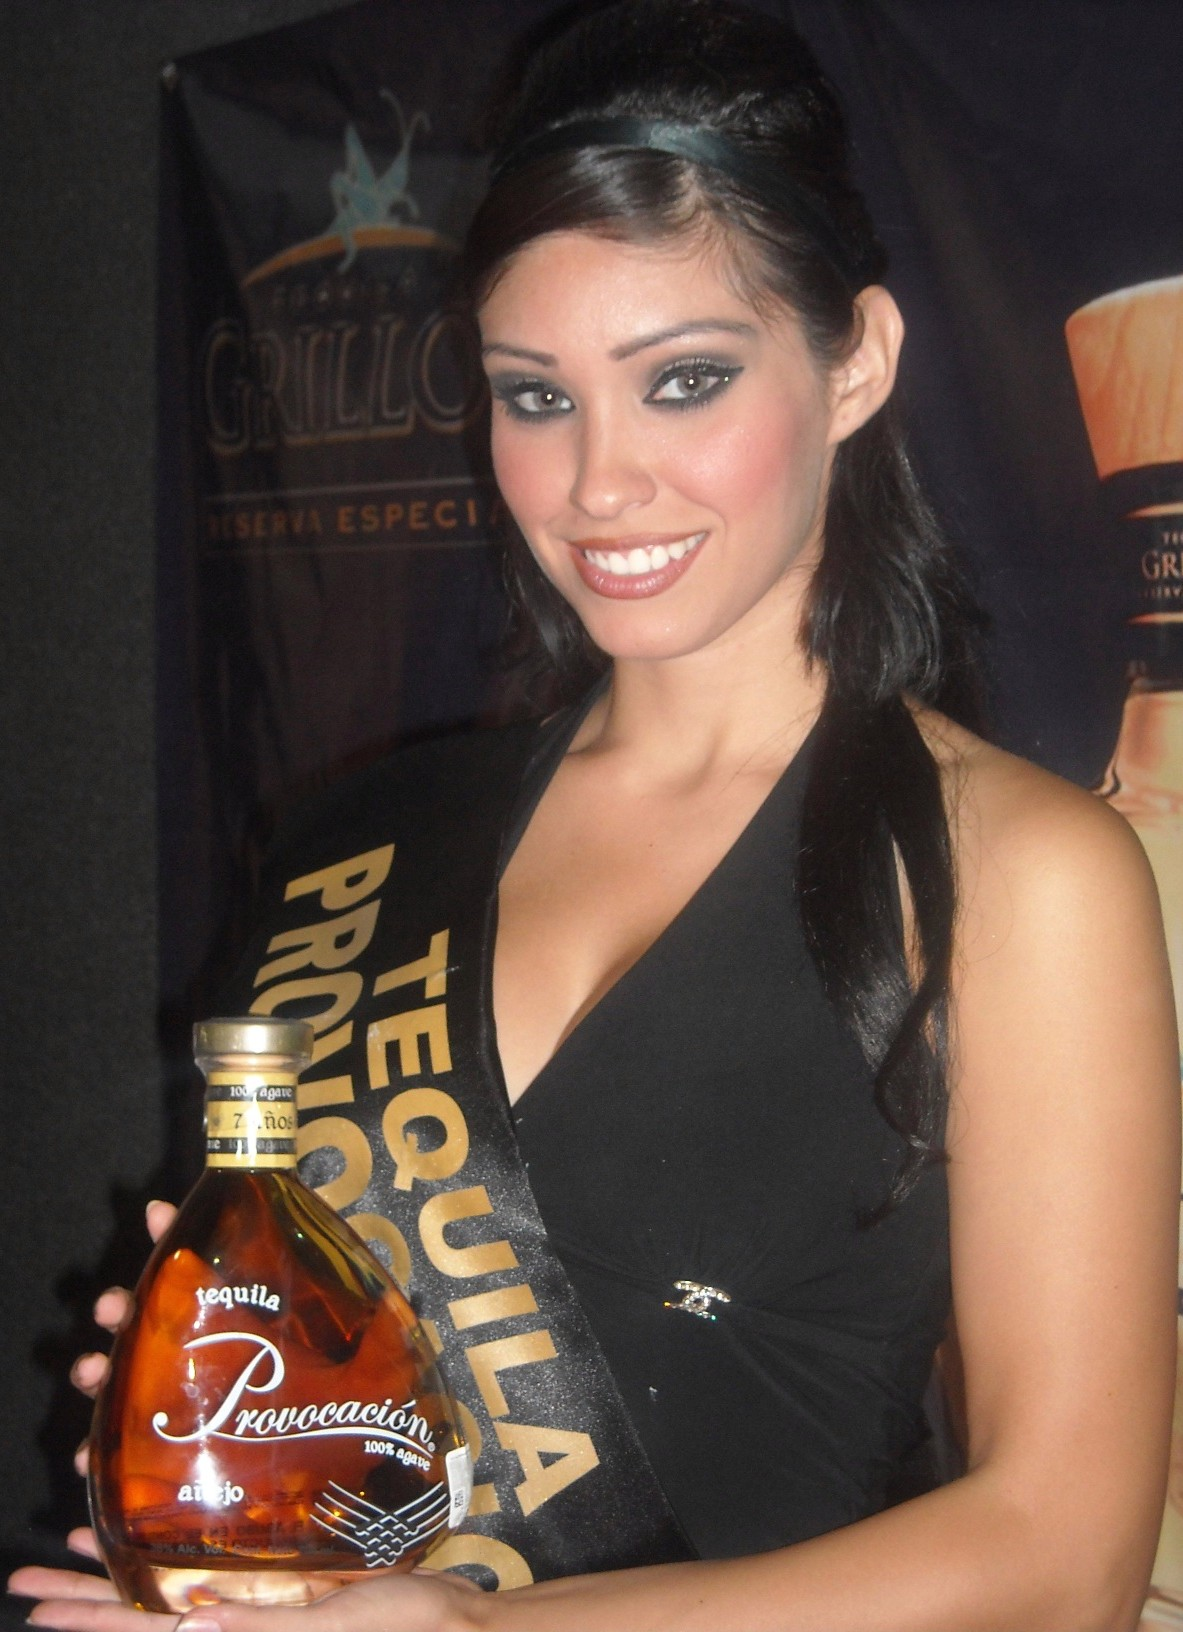 2008 TJ Expo Tequila